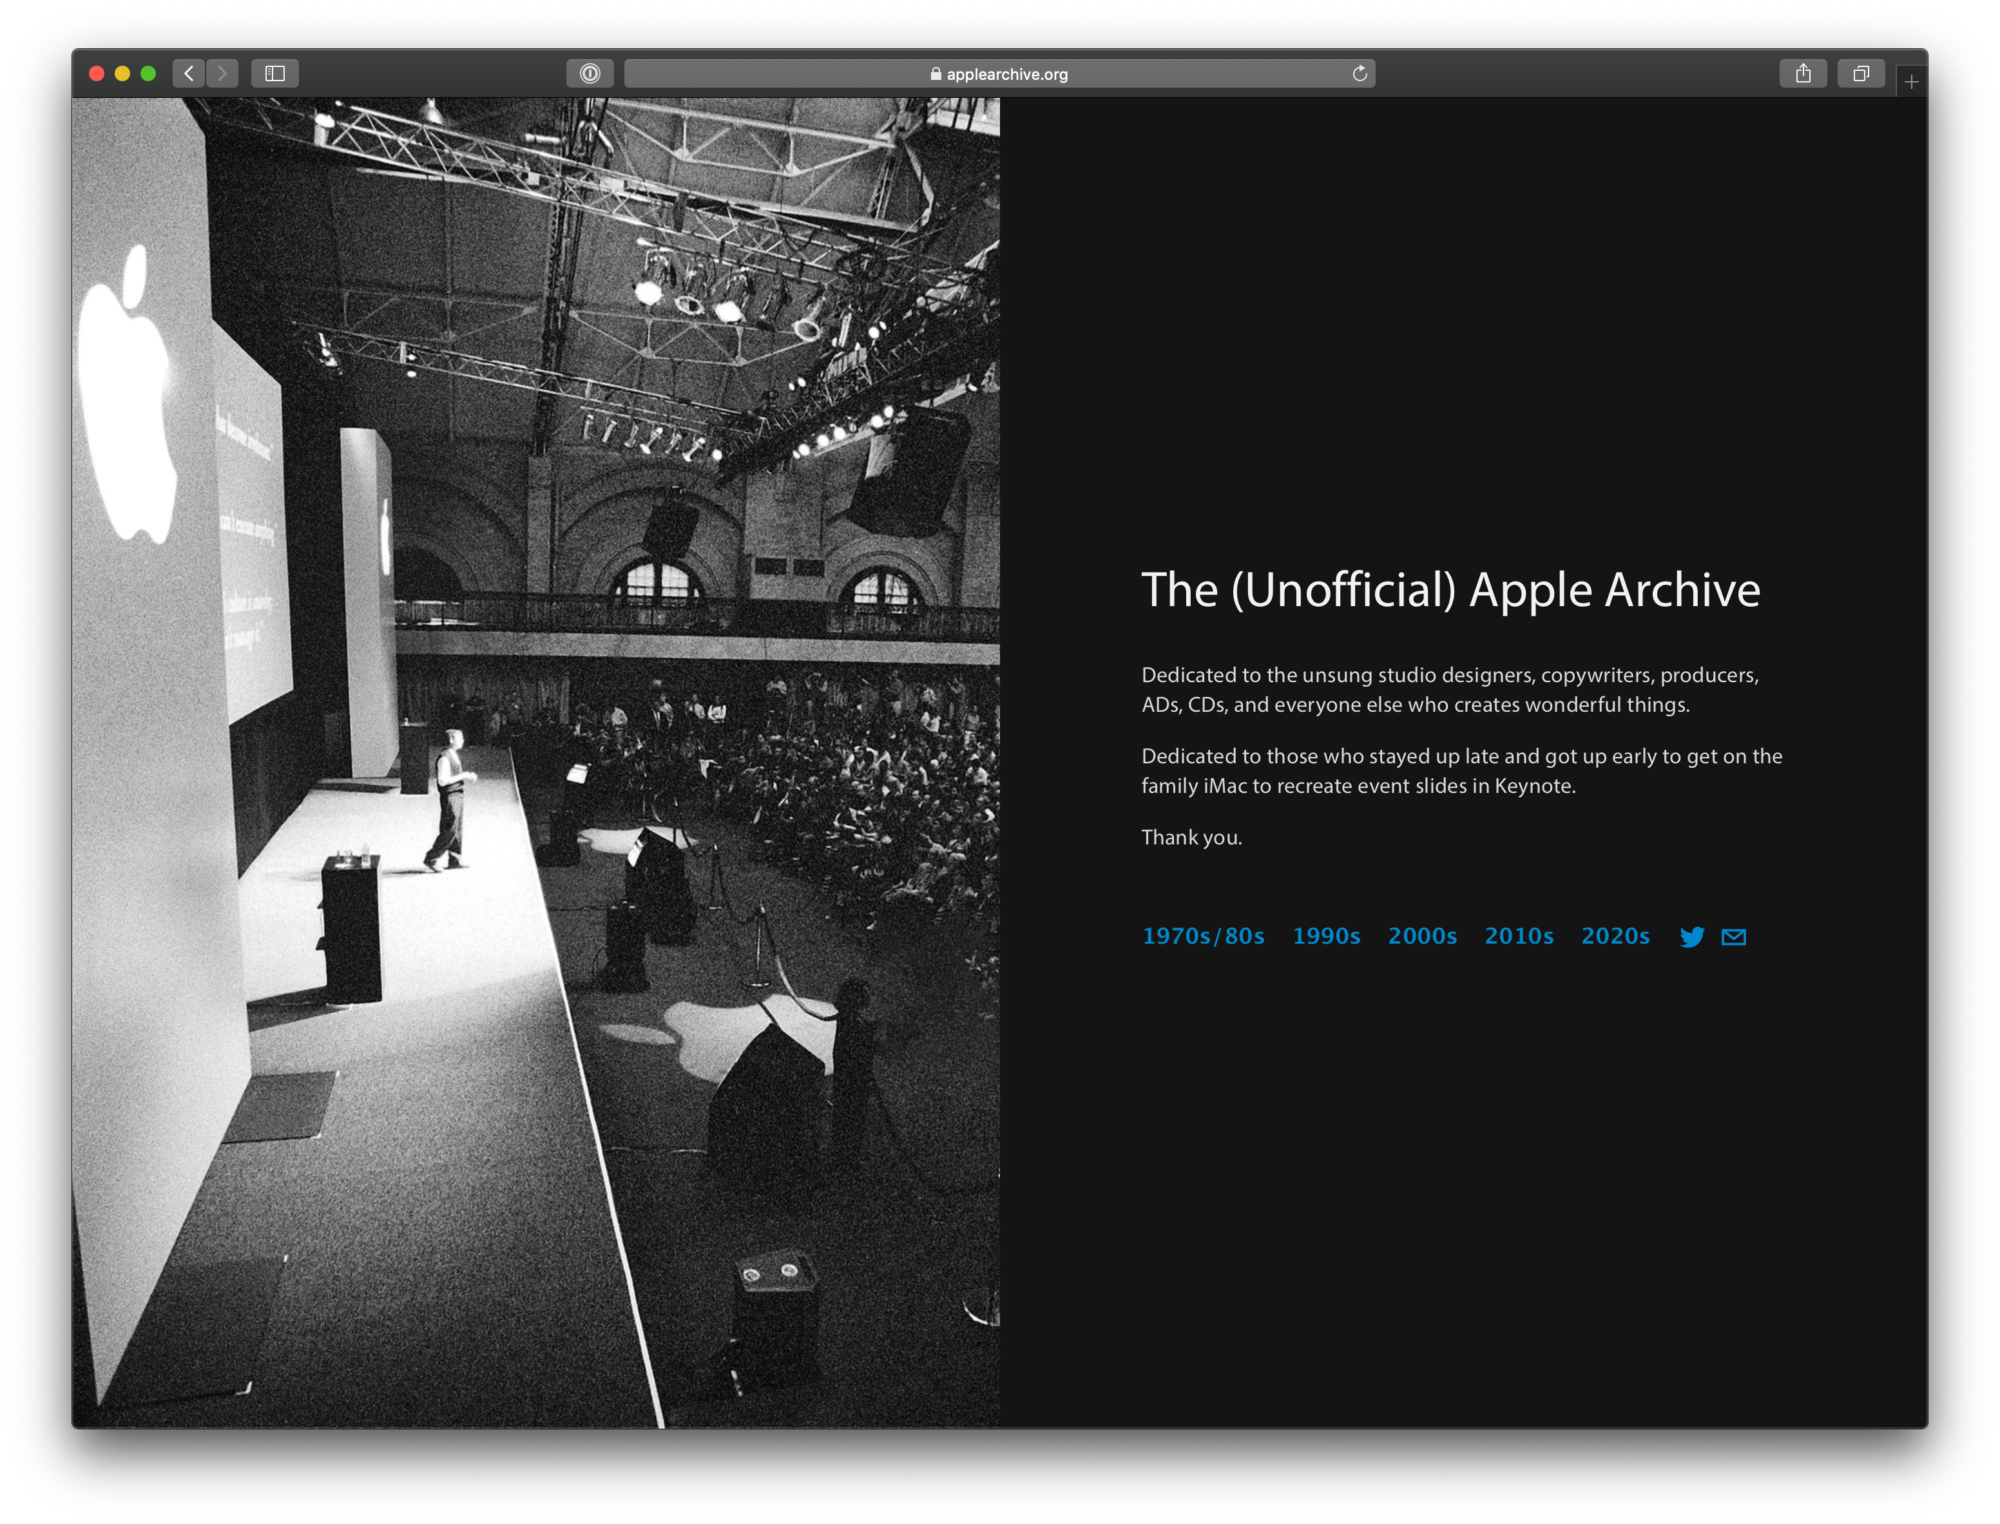 The (unofficial) Apple Archive